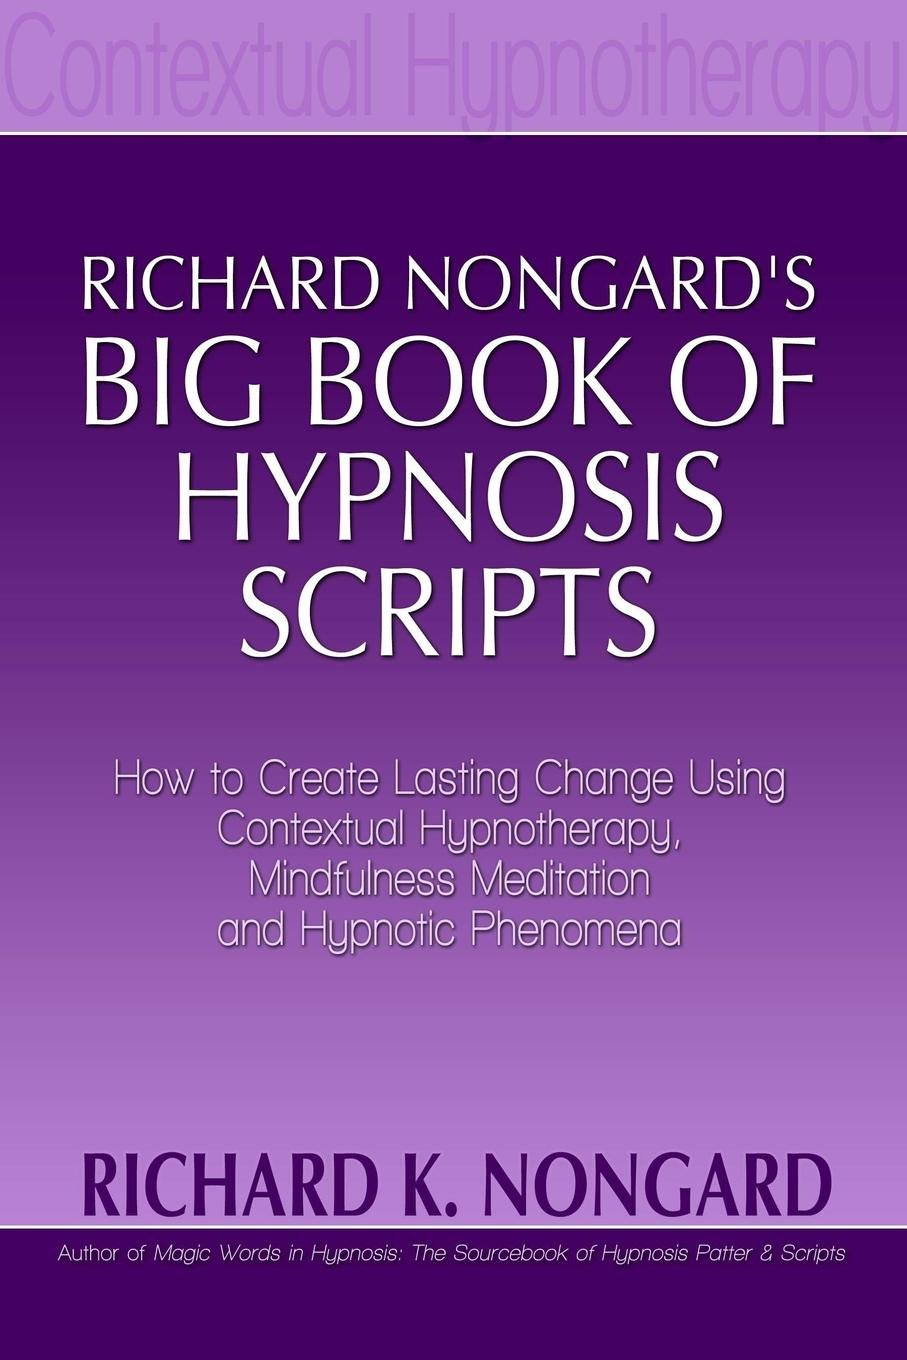 Richard Nongard's Big Book of Hypnosis Scripts:  How to Create Lasting Change Using Contextual Hypnotherapy, Mindfulness Meditation and Hypnotic Phenomena